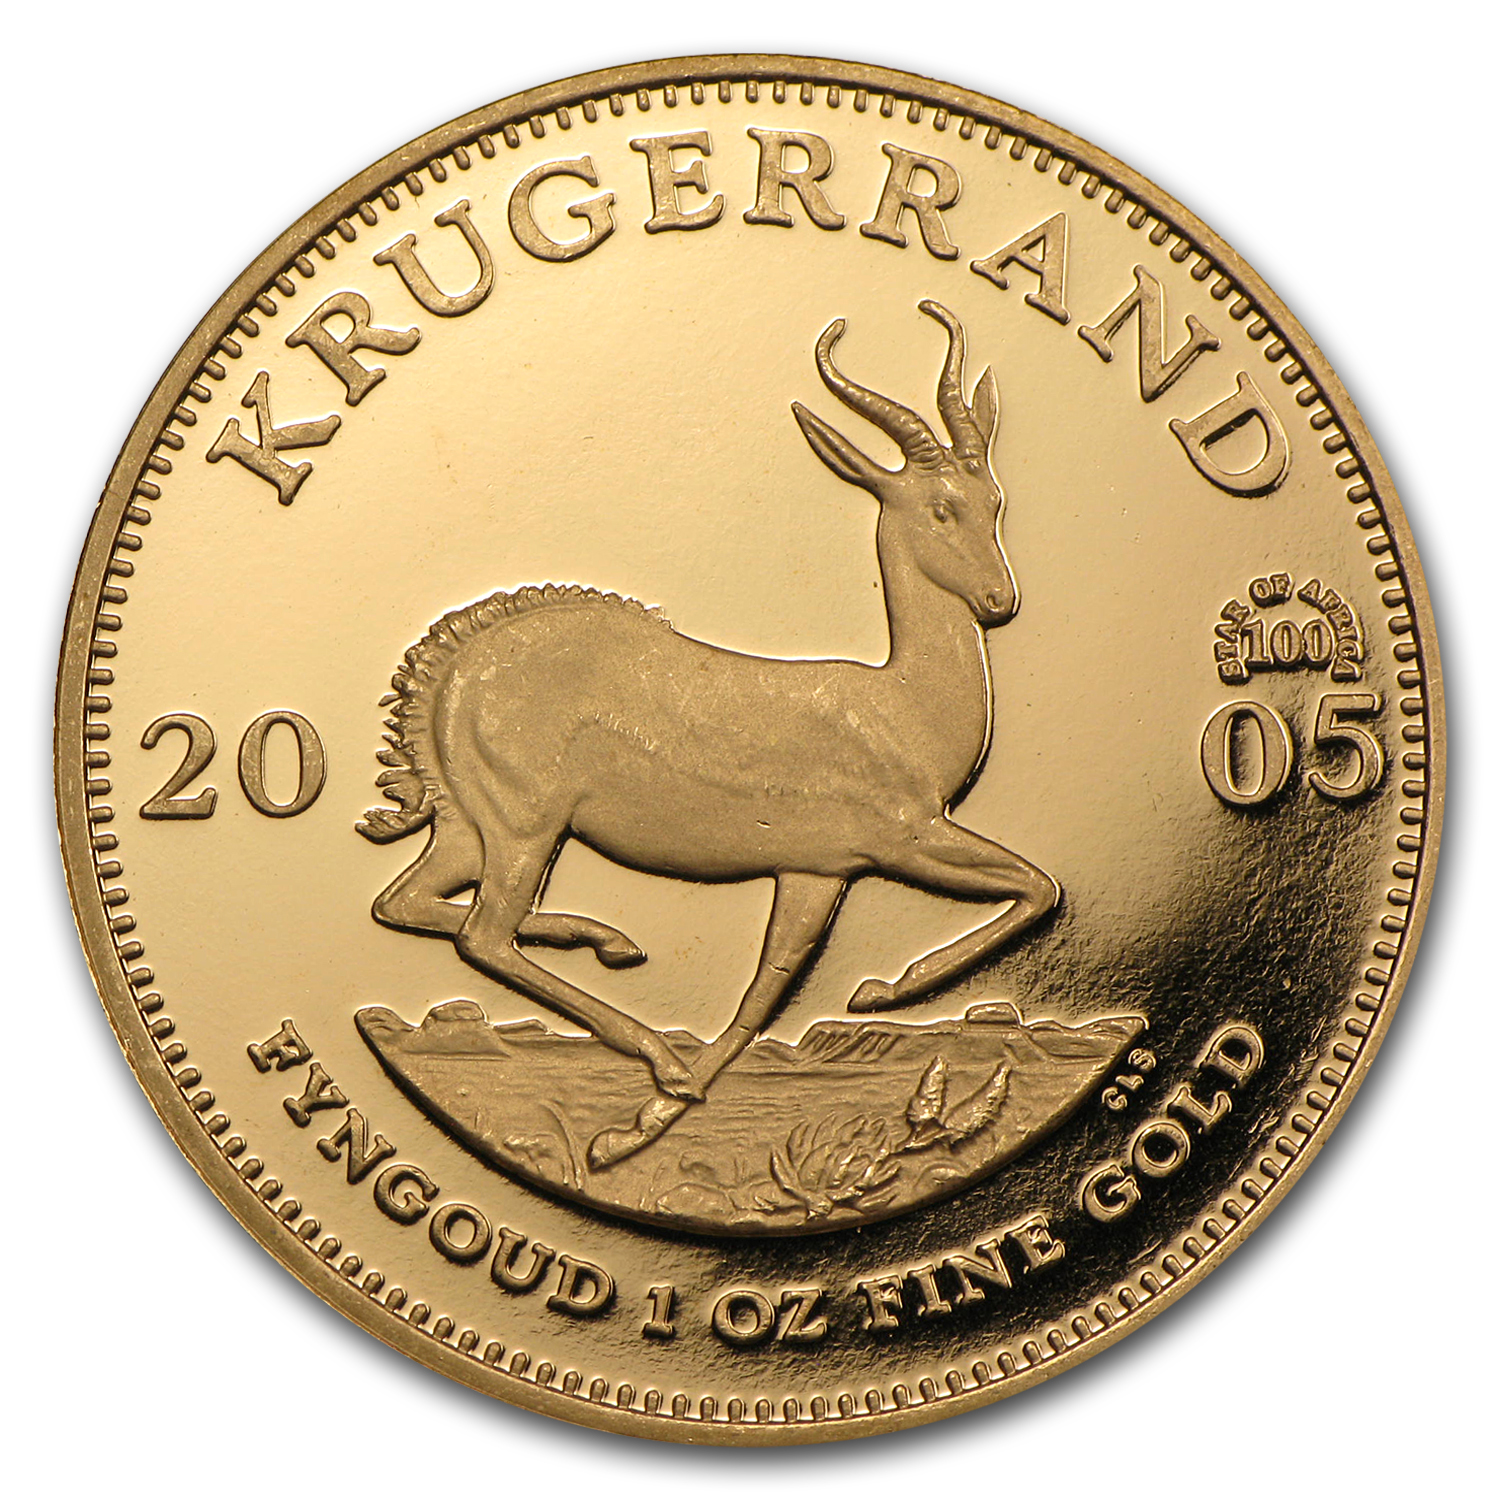 2005 South Africa 1 oz Proof Gold Krugerrand (Star of Africa)